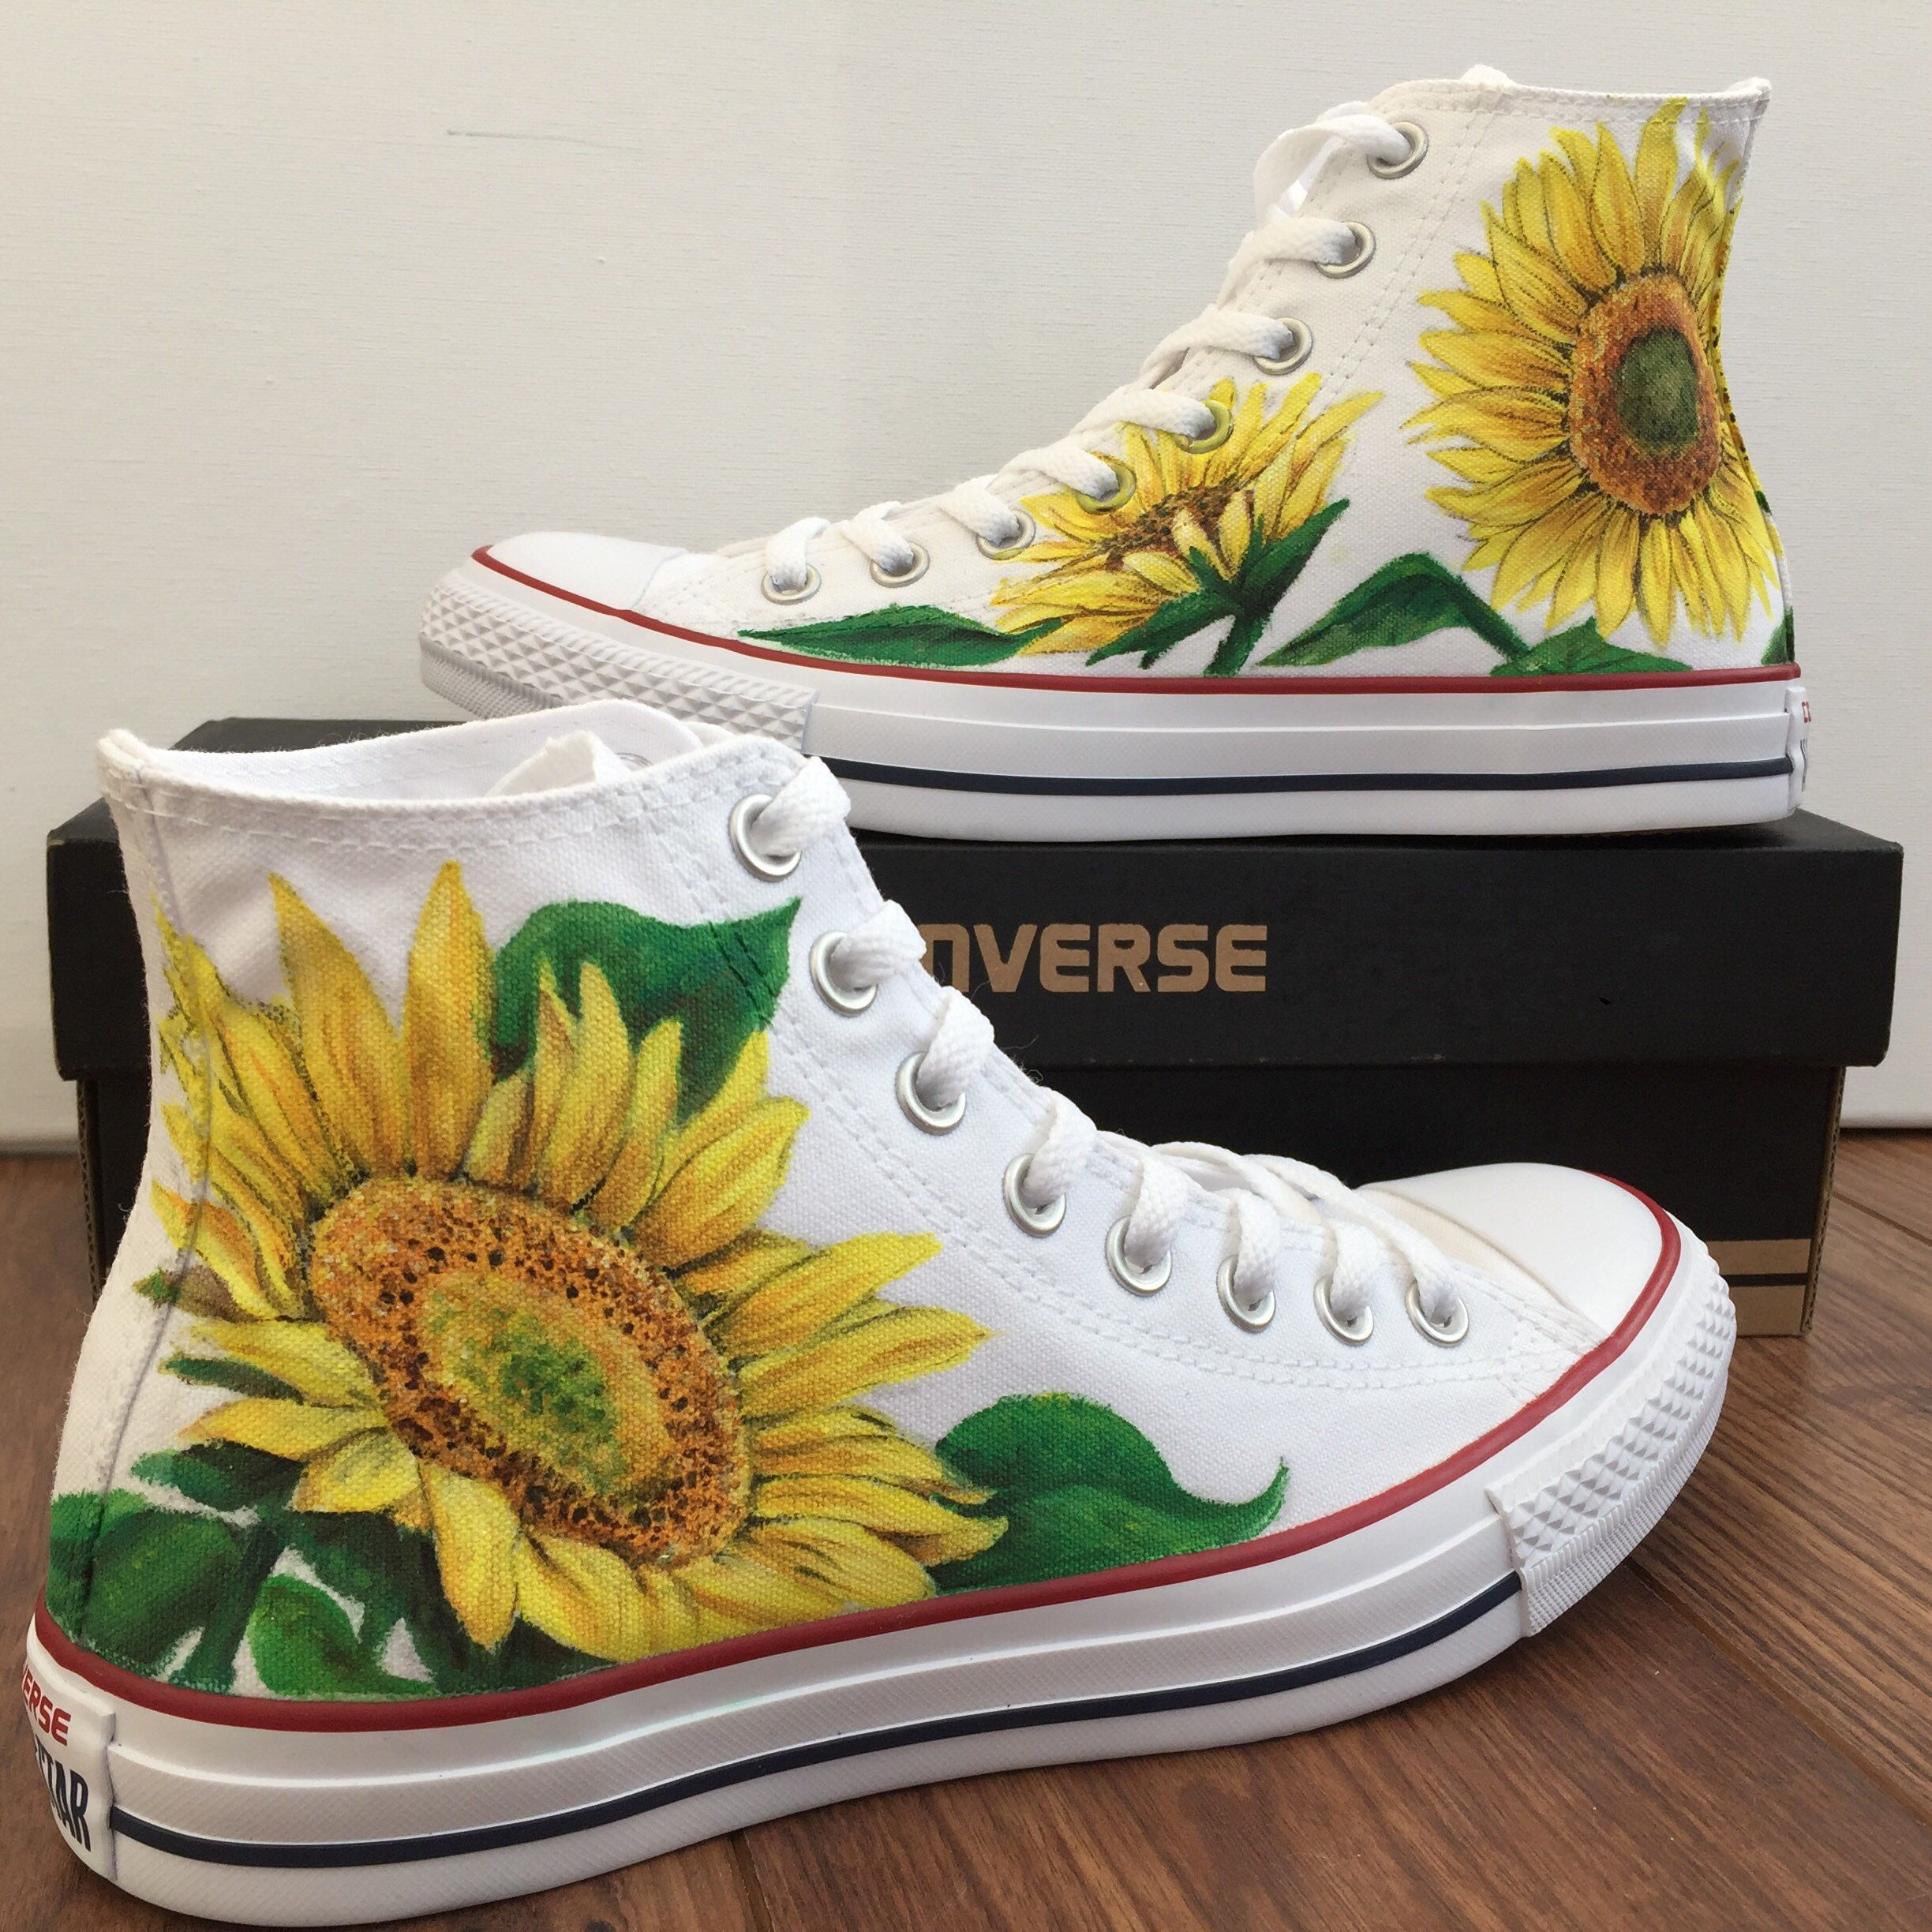 dd485aed1 Excited to share this item from my  etsy shop  Original Custom Hand Painted  Converse sunflowers  shoes  gift  sunflower  sunflowerconverse   sunflowershoes   ...